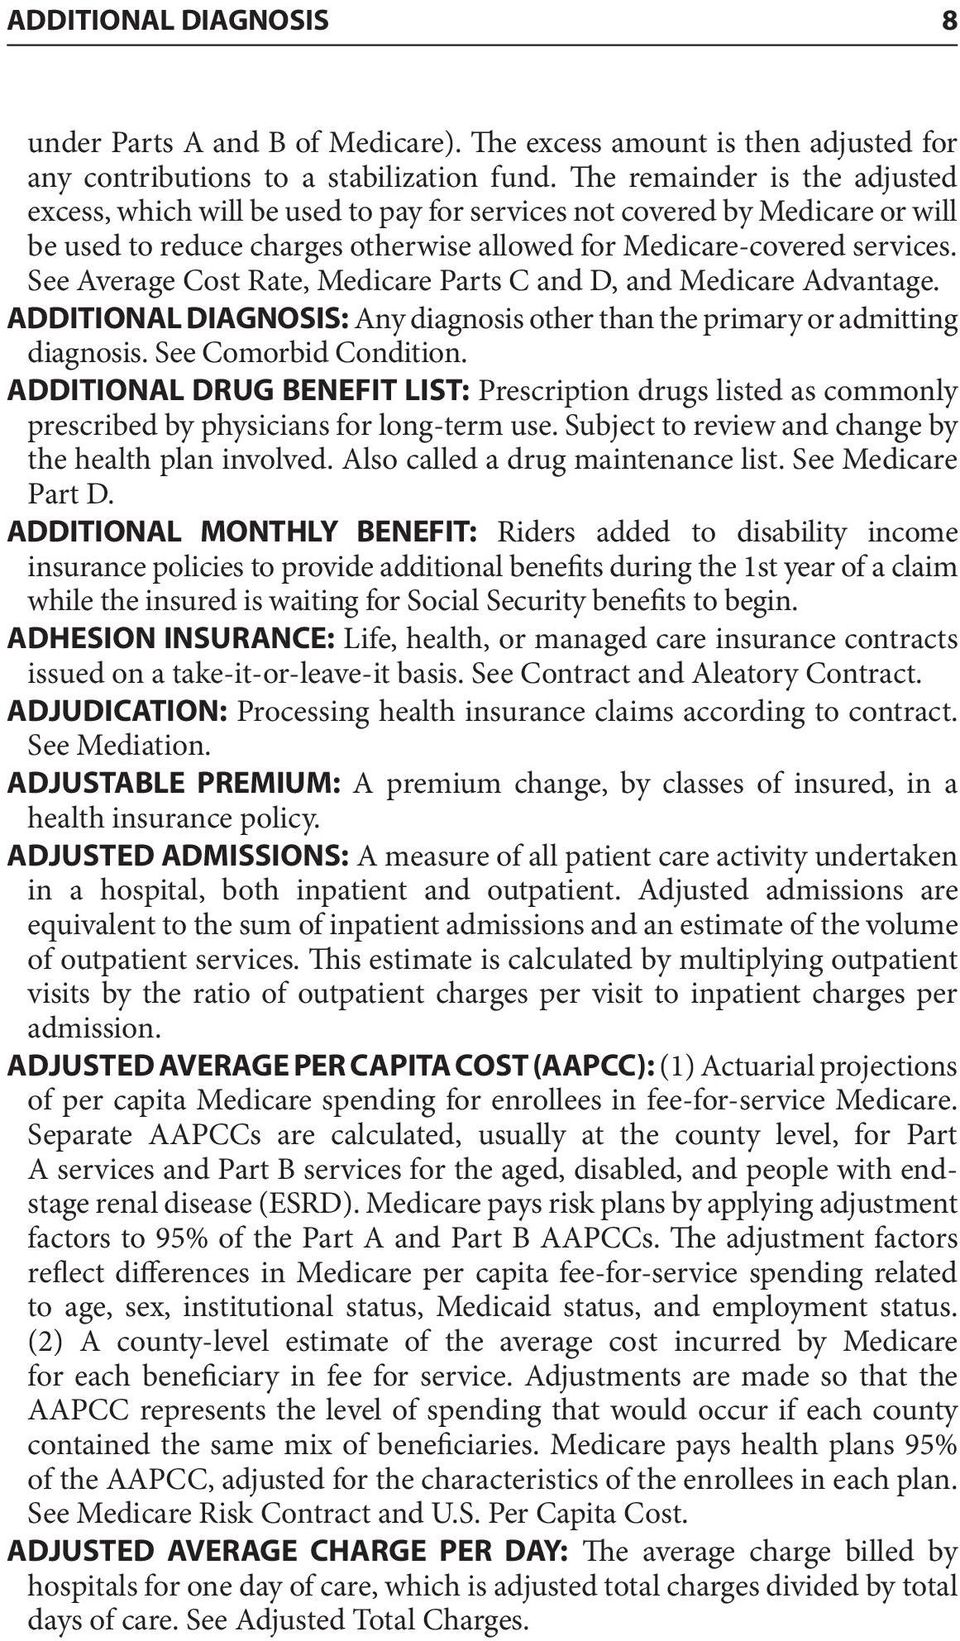 See Average Cost Rate, Medicare Parts C and D, and Medicare Advantage. ADDITIONAL DIAGNOSIS: Any diagnosis other than the primary or admitting diagnosis. See Comorbid Condition.